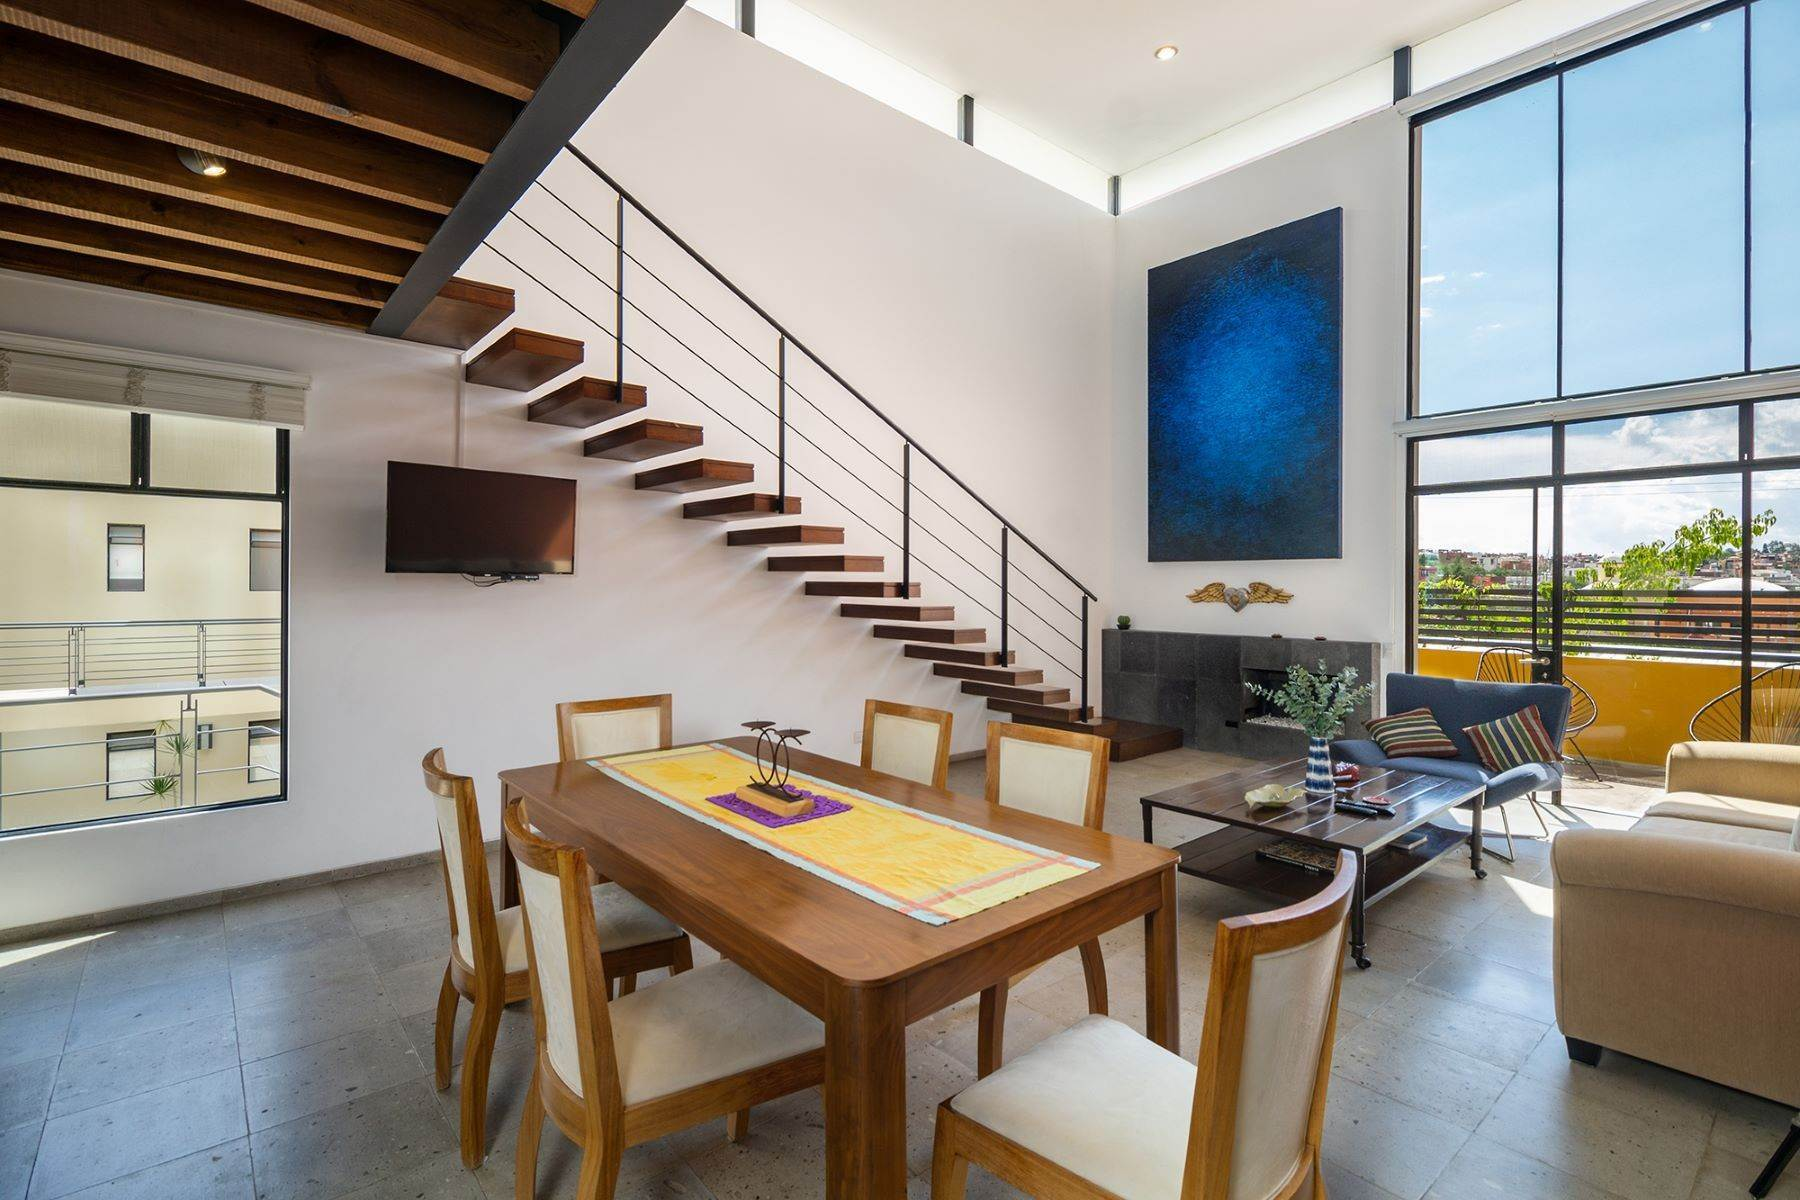 2. Single Family Homes for Sale at Chimal Loft Miguel Araujo 1B San Miguel De Allende, Guanajuato 37700 Mexico